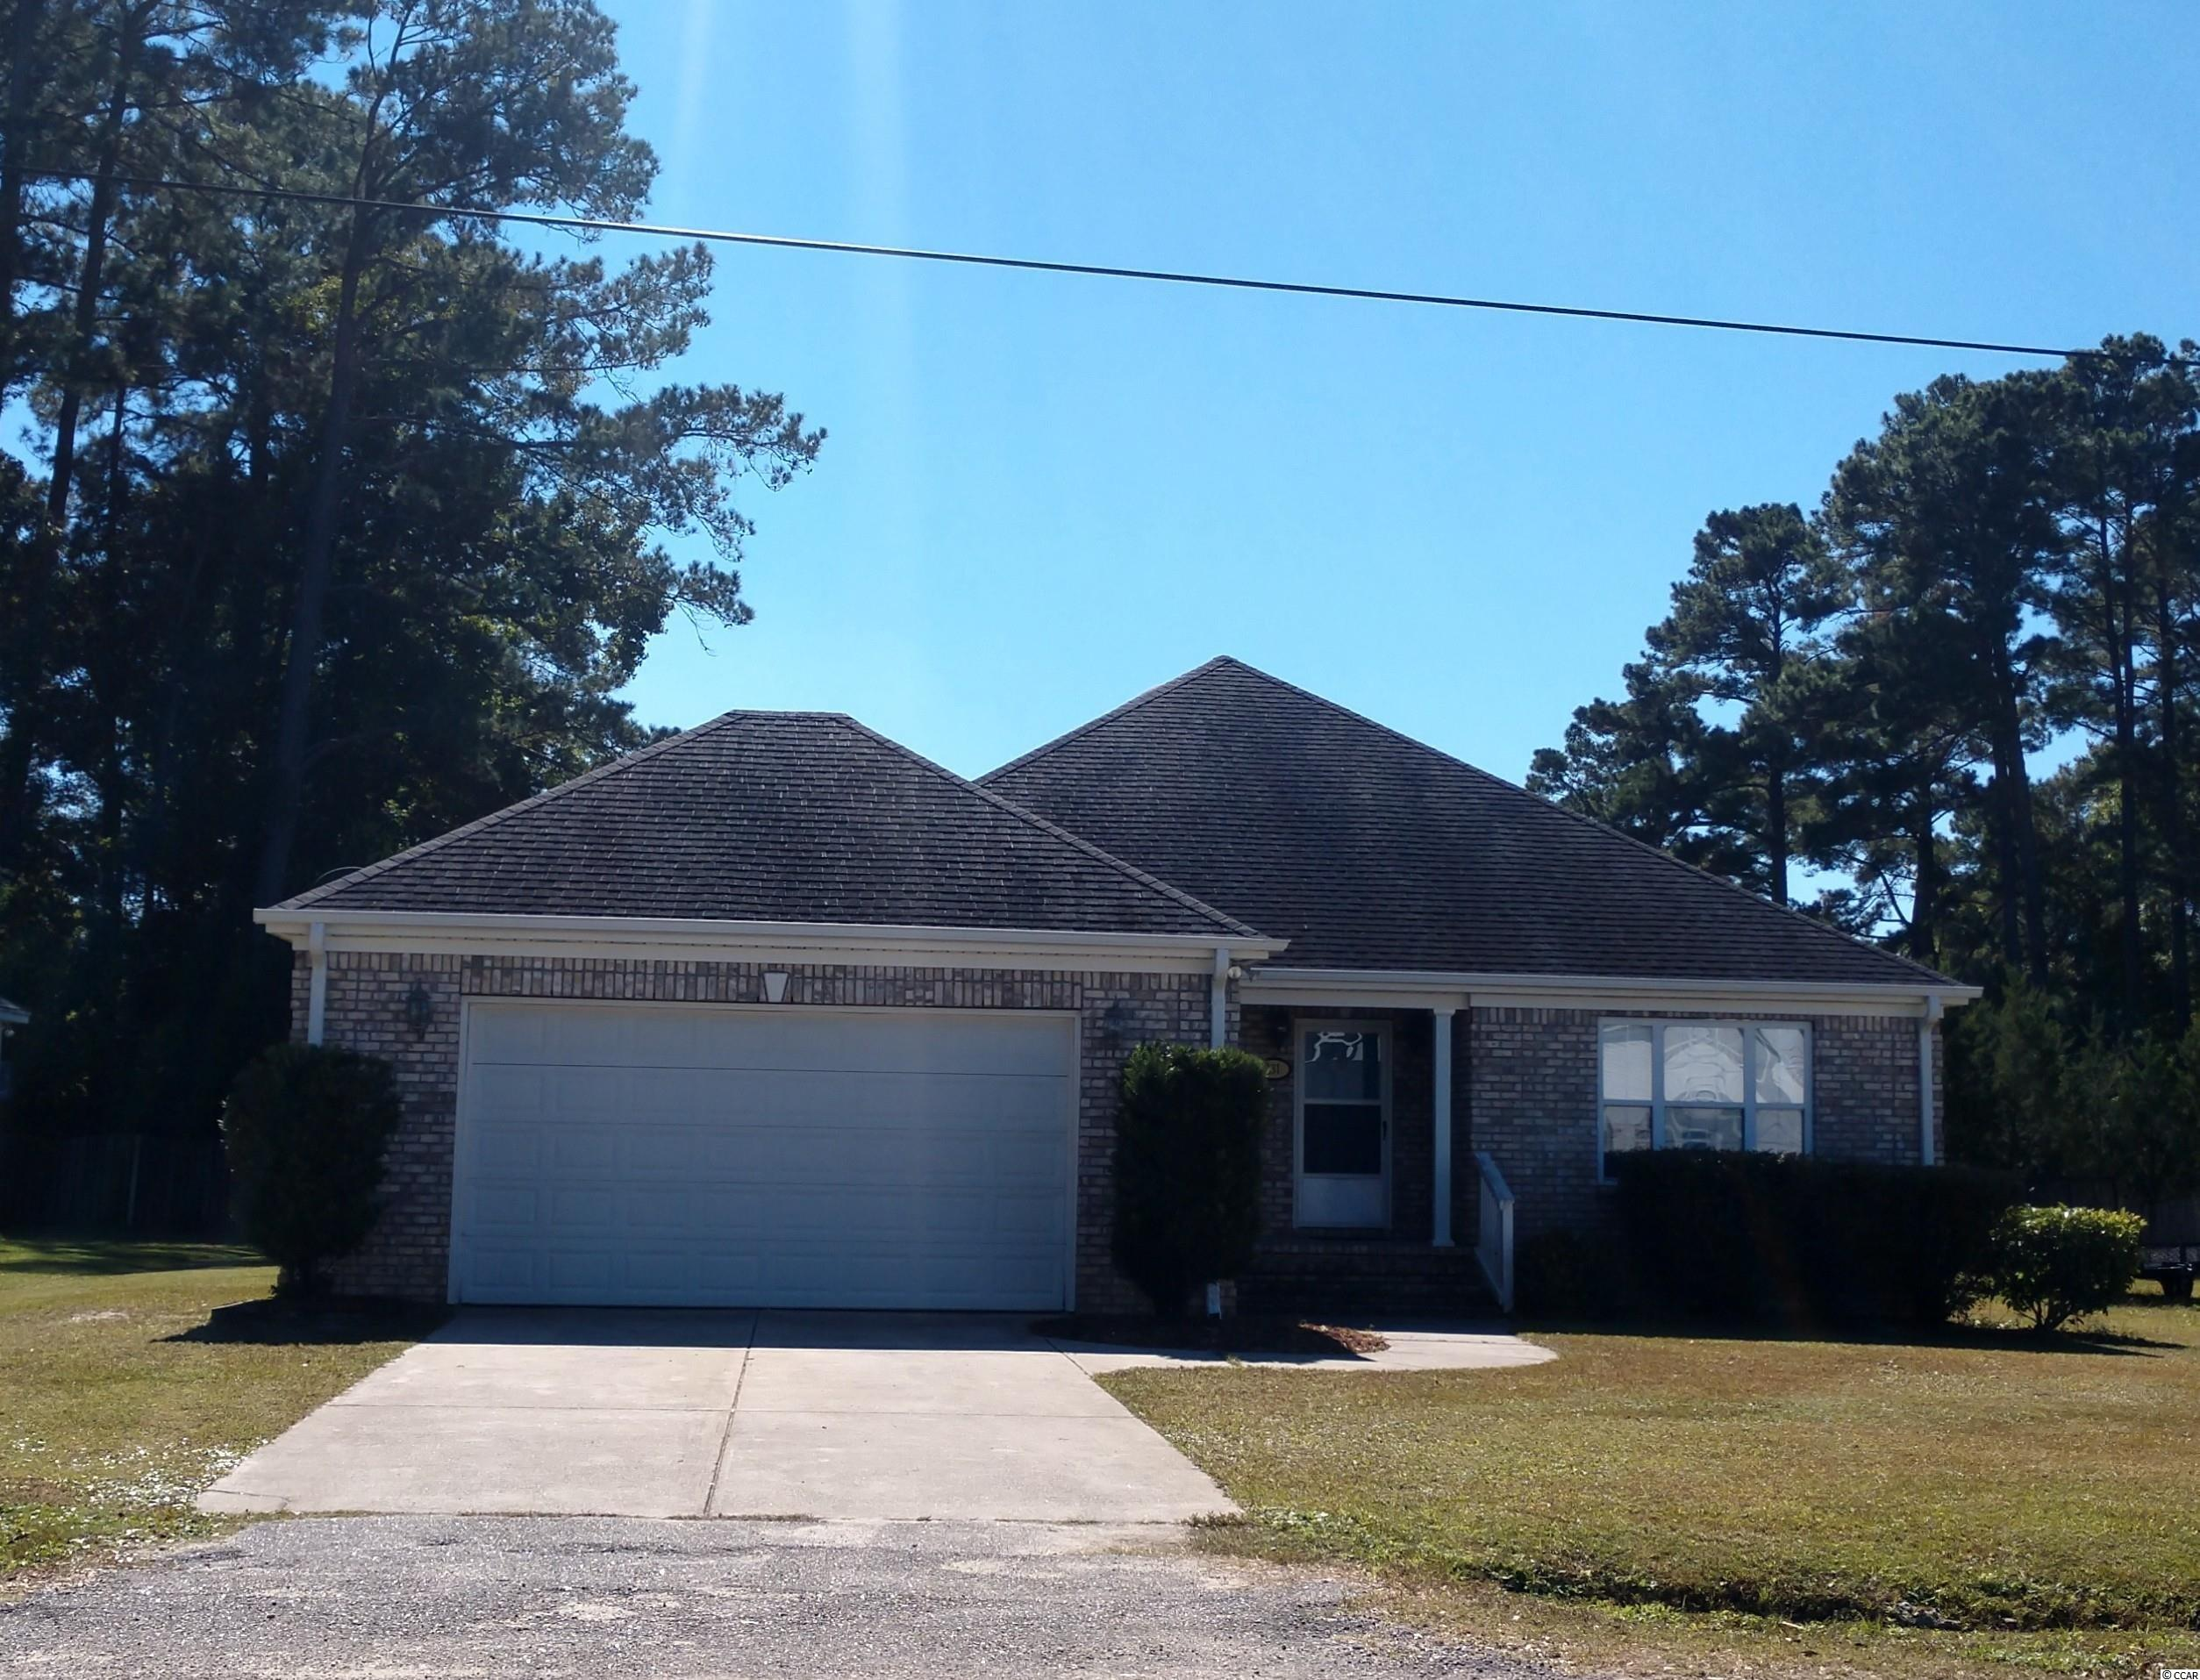 Home is ready for immediate occupancy. Large low maintenance brick and vinyl home on attractive lot with screened back porch. Interior offers large open floorplan for living area, split for bedrooms, and master has garden tub and a separate shower. This home is close to schools, hospital, dining, shopping and only a few miles to the beach. Square footage is approximate and not guaranteed. Buyer is responsible for verification.